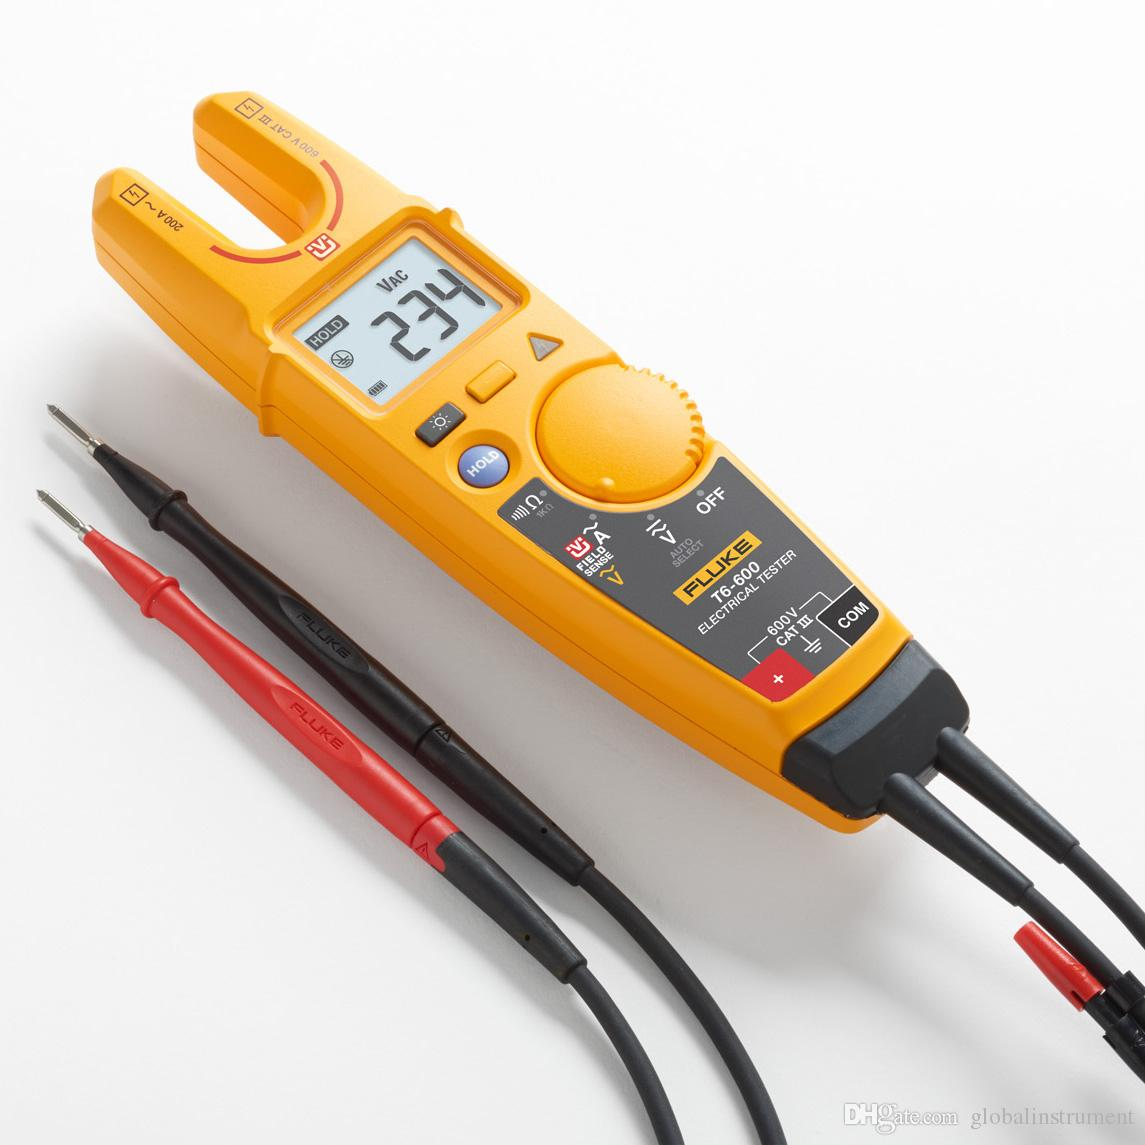 Fluke T6 600 Clamp Continuity Current Electrical Tester Brand New About Ac Voltage Detector 90v To 1000v Live Circuit Online With 16229 Piece On Globalinstruments Store